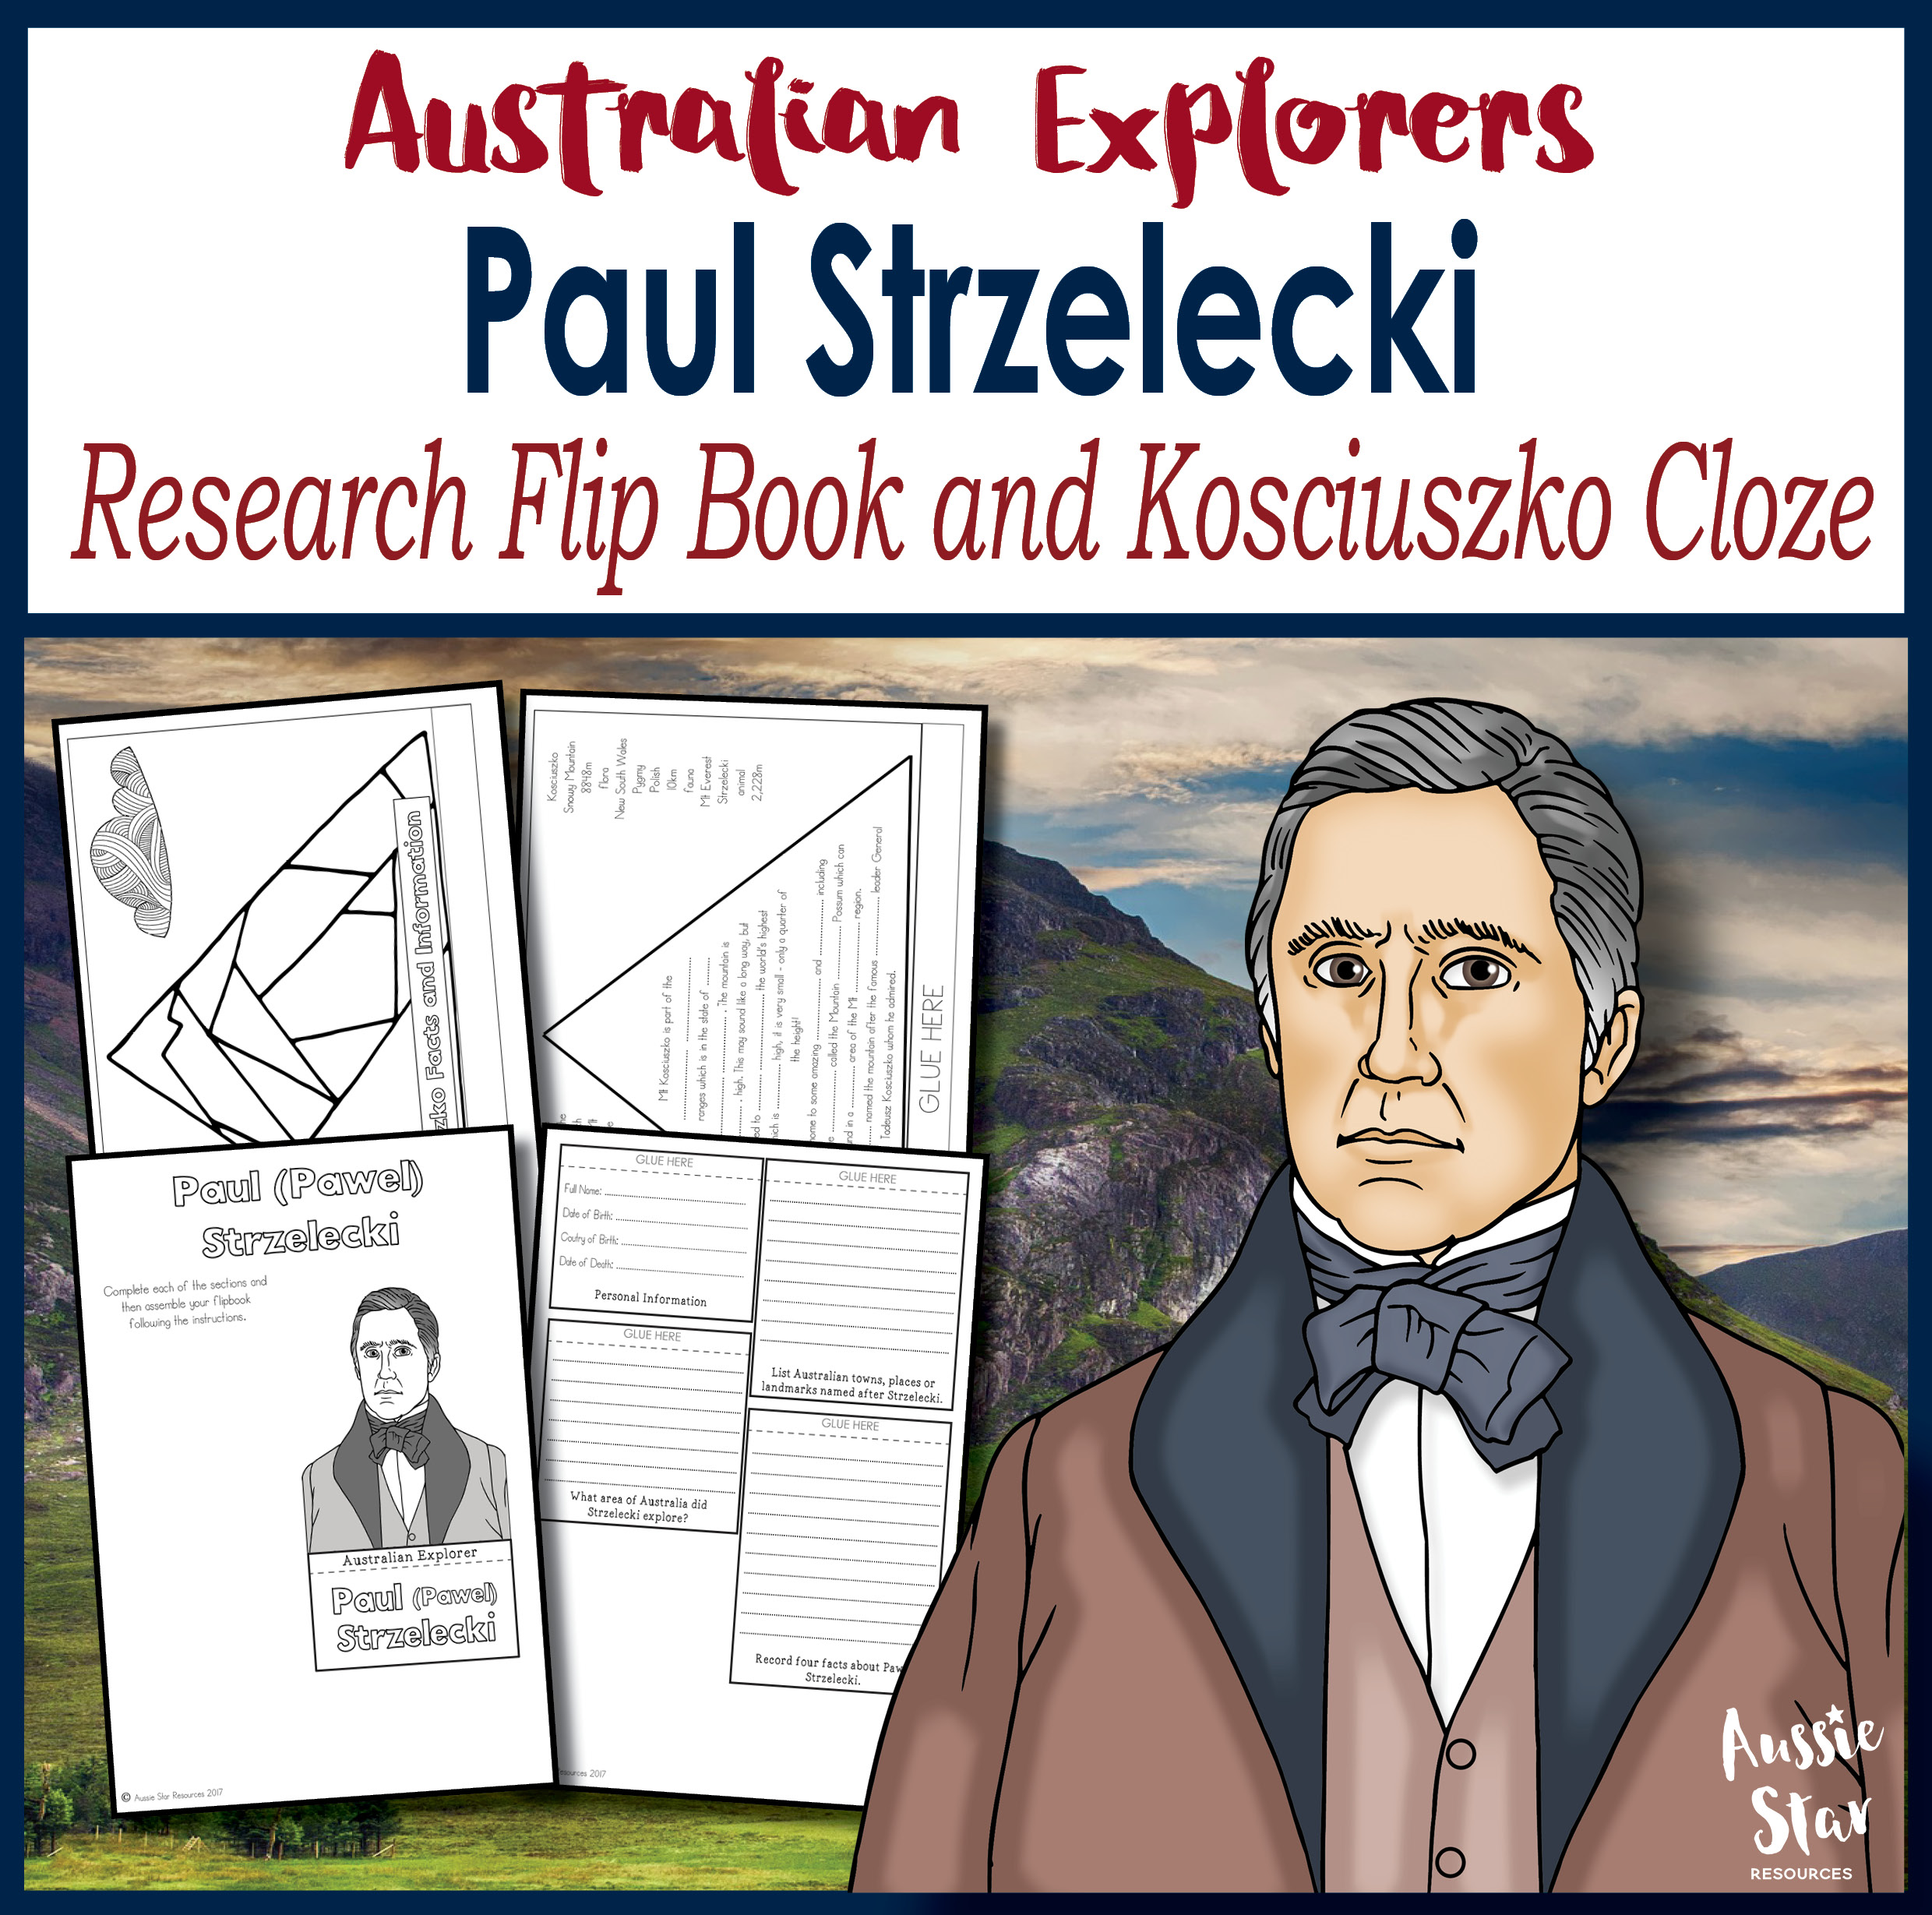 Paul Strzelecki research flip book Mt Kosciuszko cloze